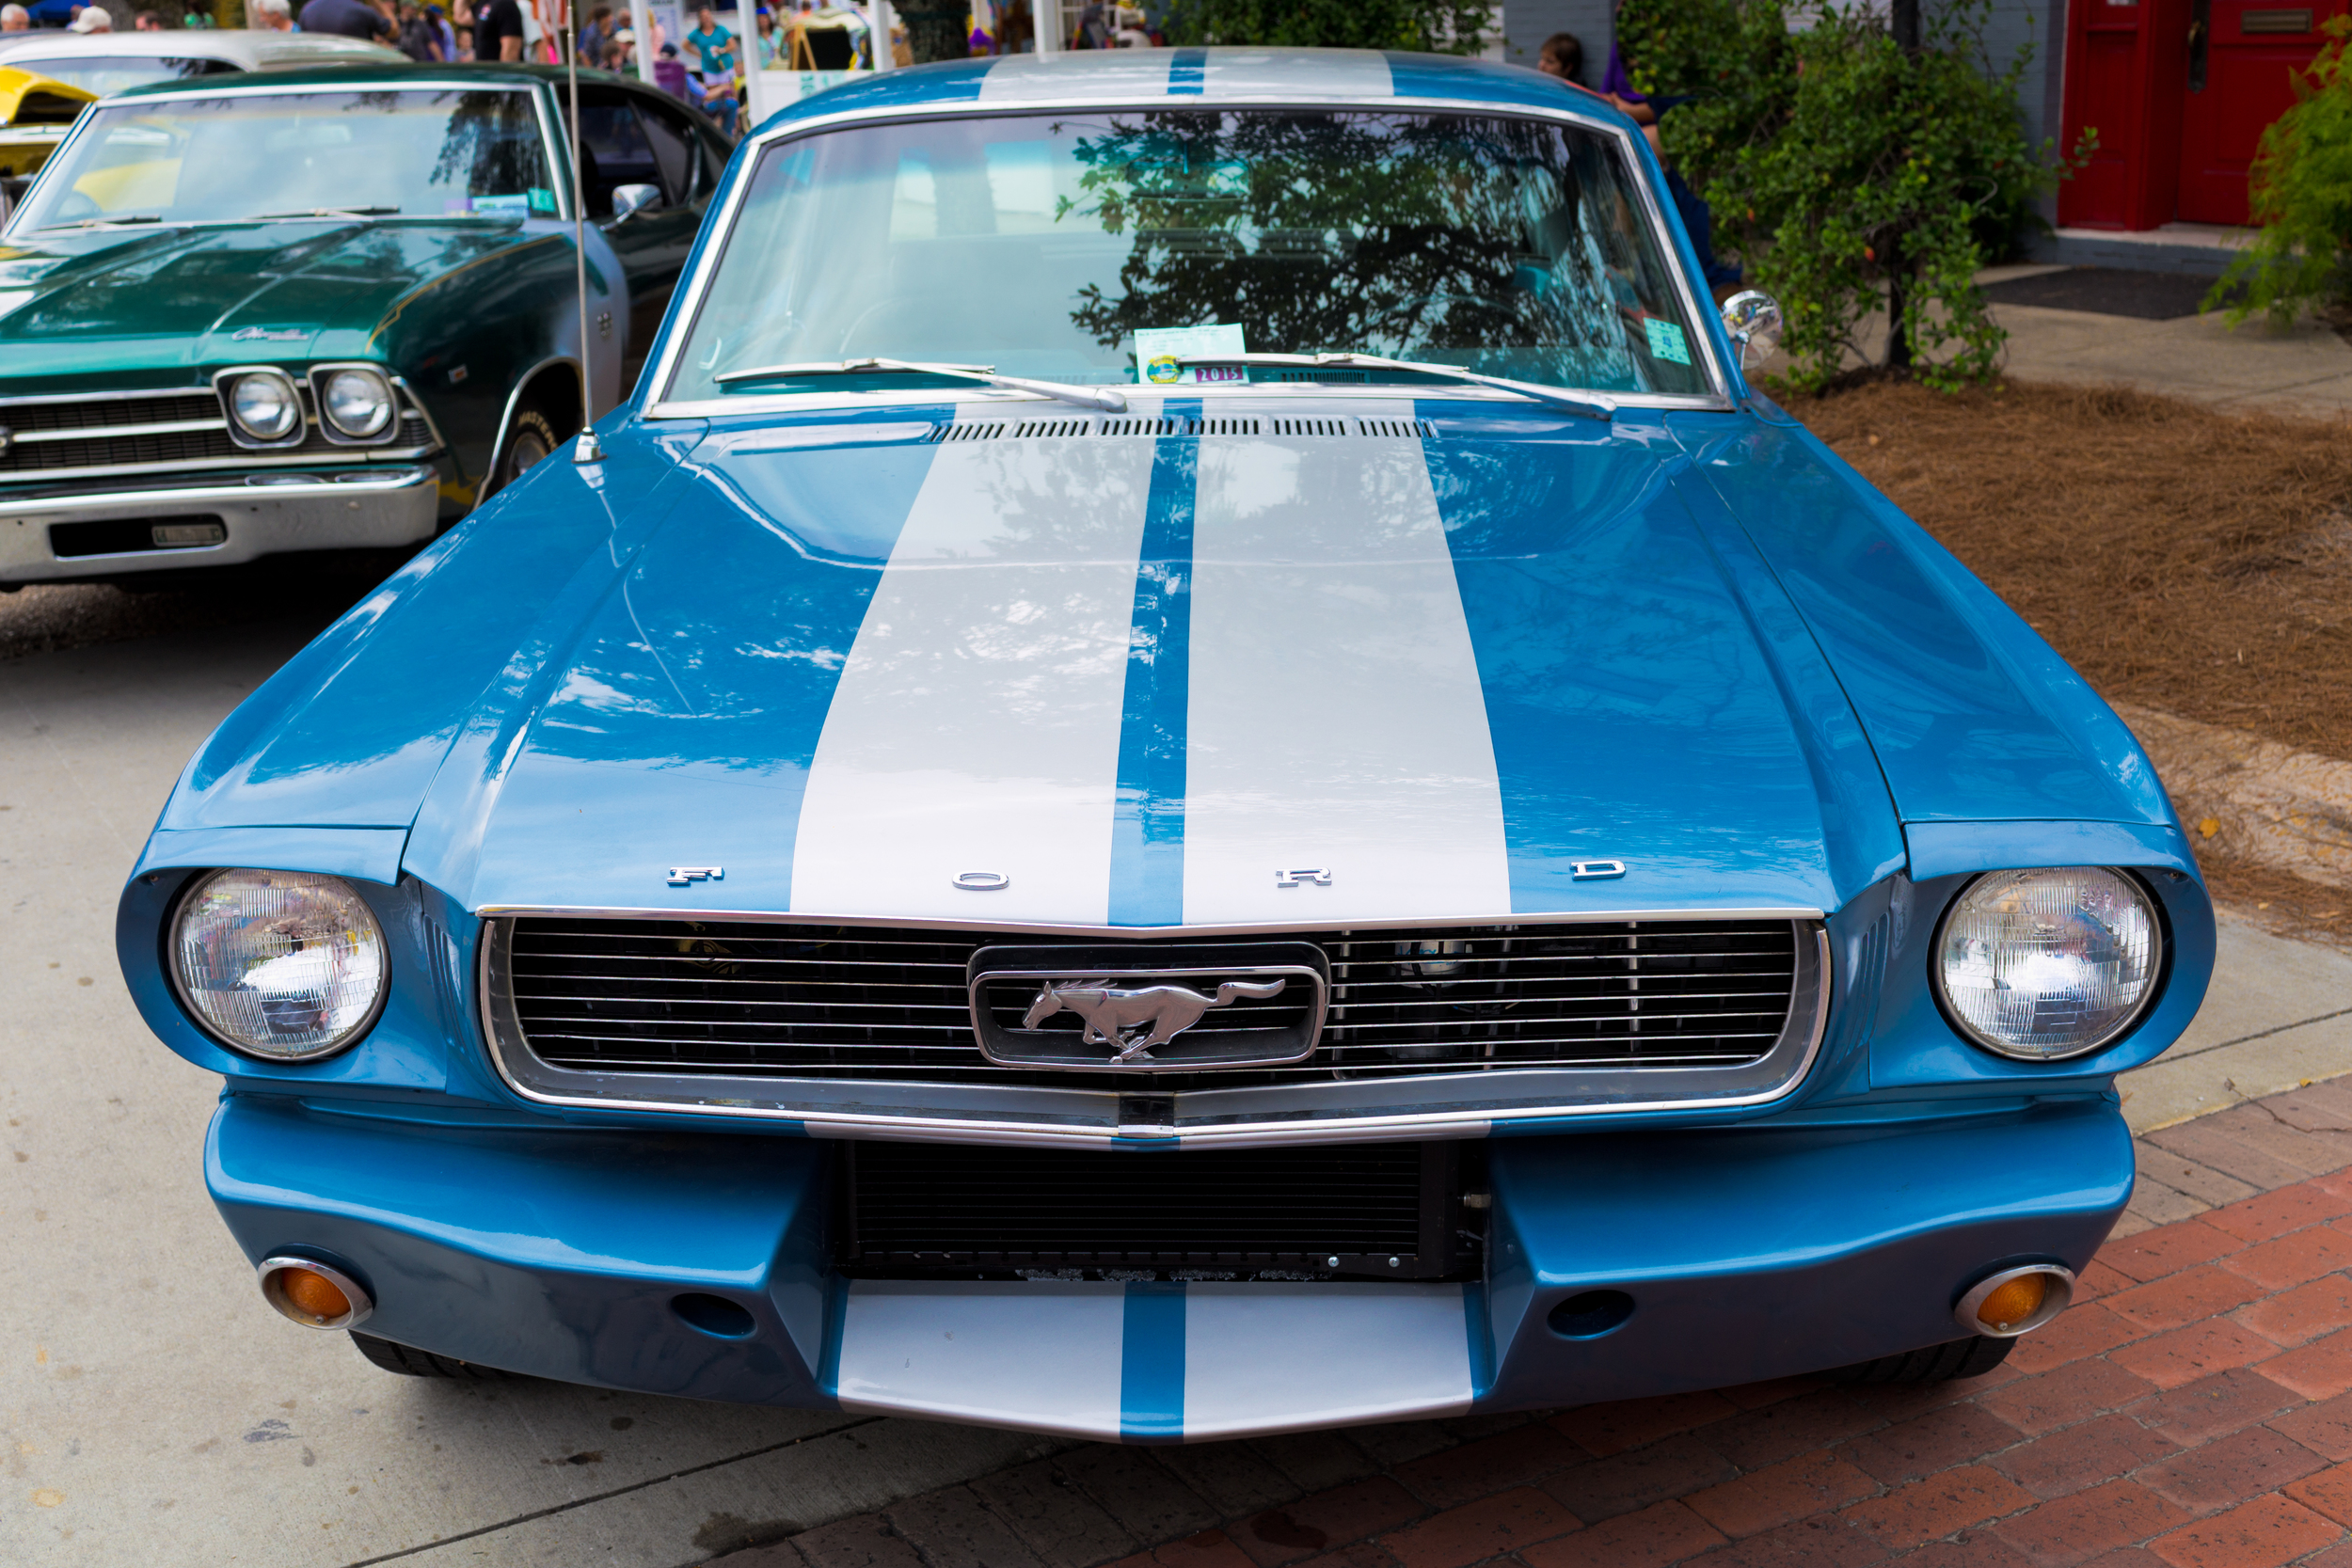 antique Ford Mustang (blue) at Cruisin' the Coast, Ocean Springs